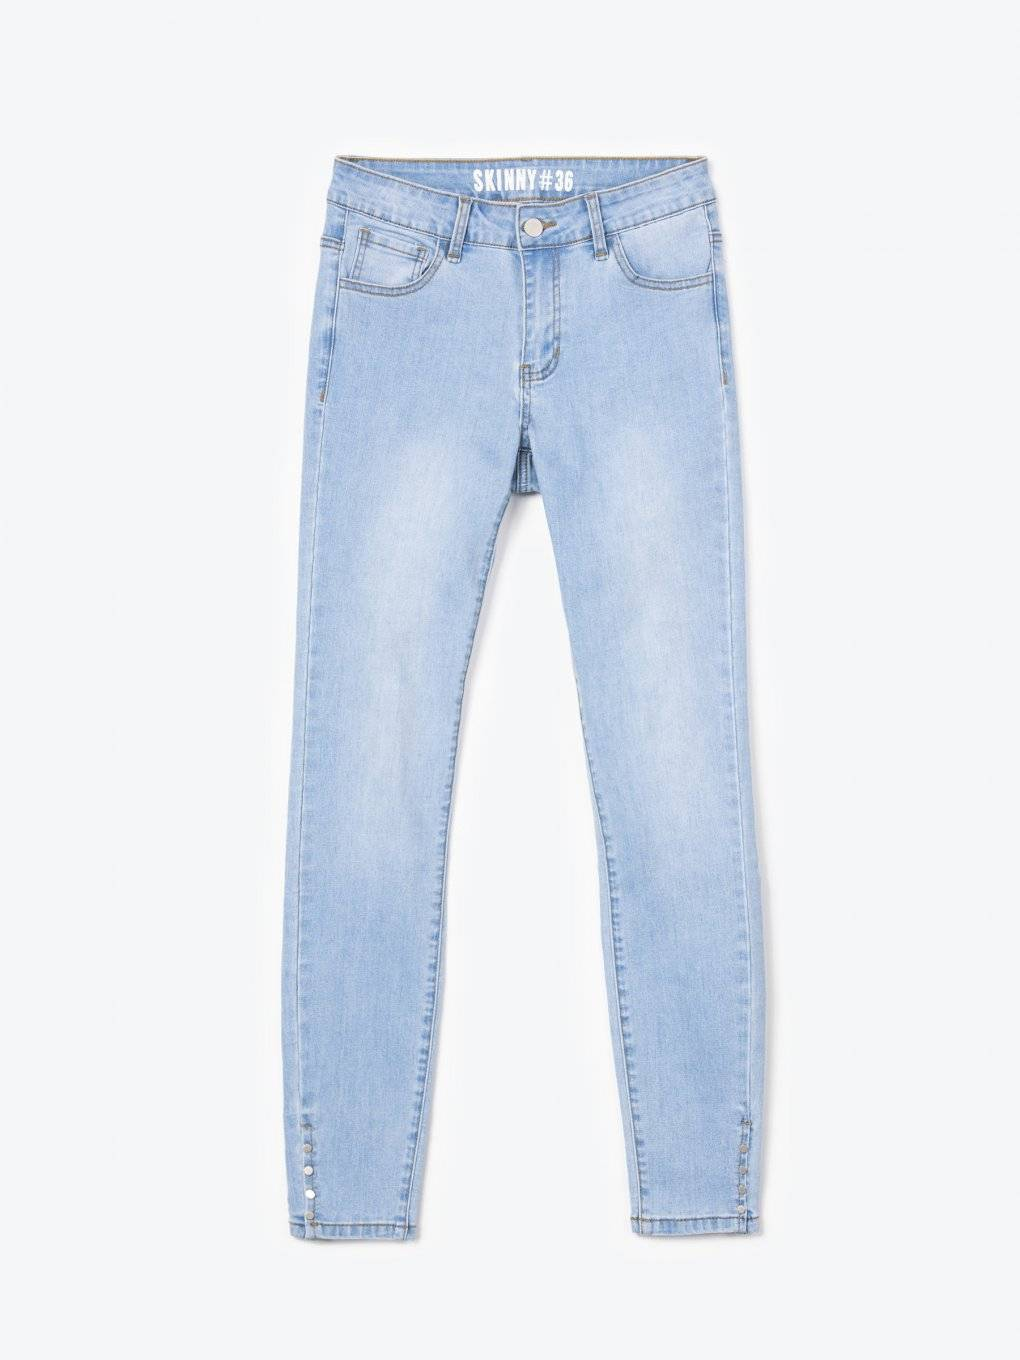 Skinny jeans with transparent back pockets